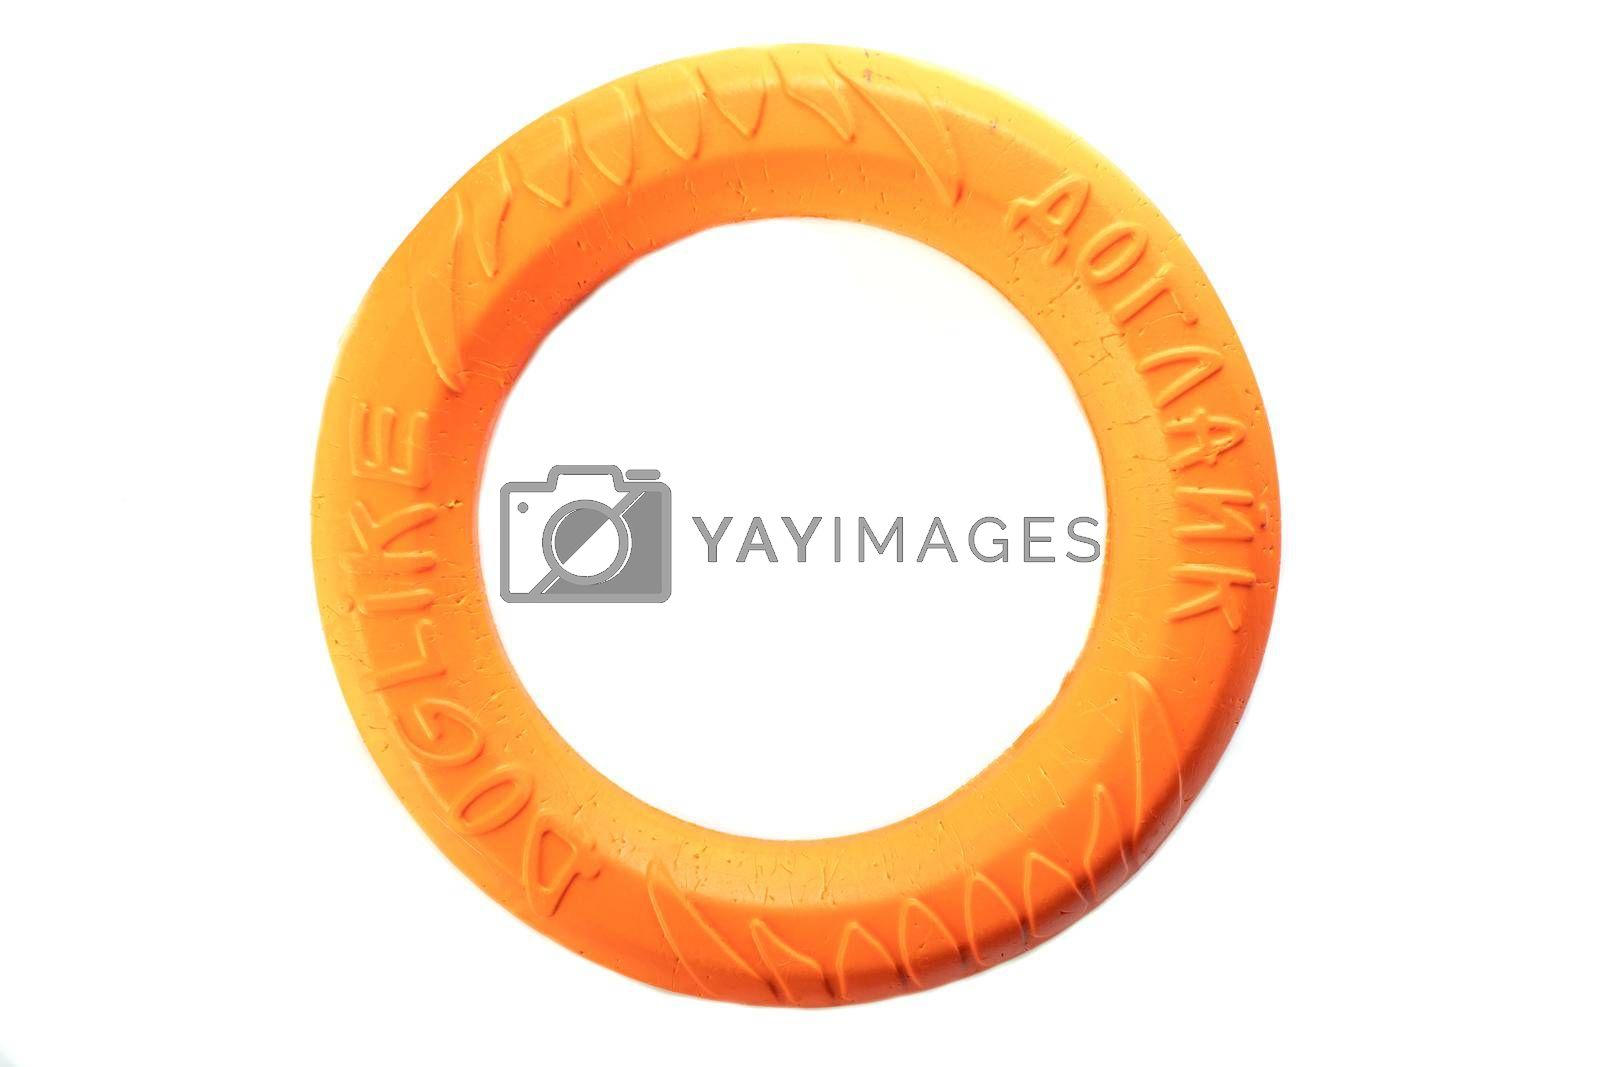 Dog ring pet toy good for training on white background. Russia, Omsk, 17.012020